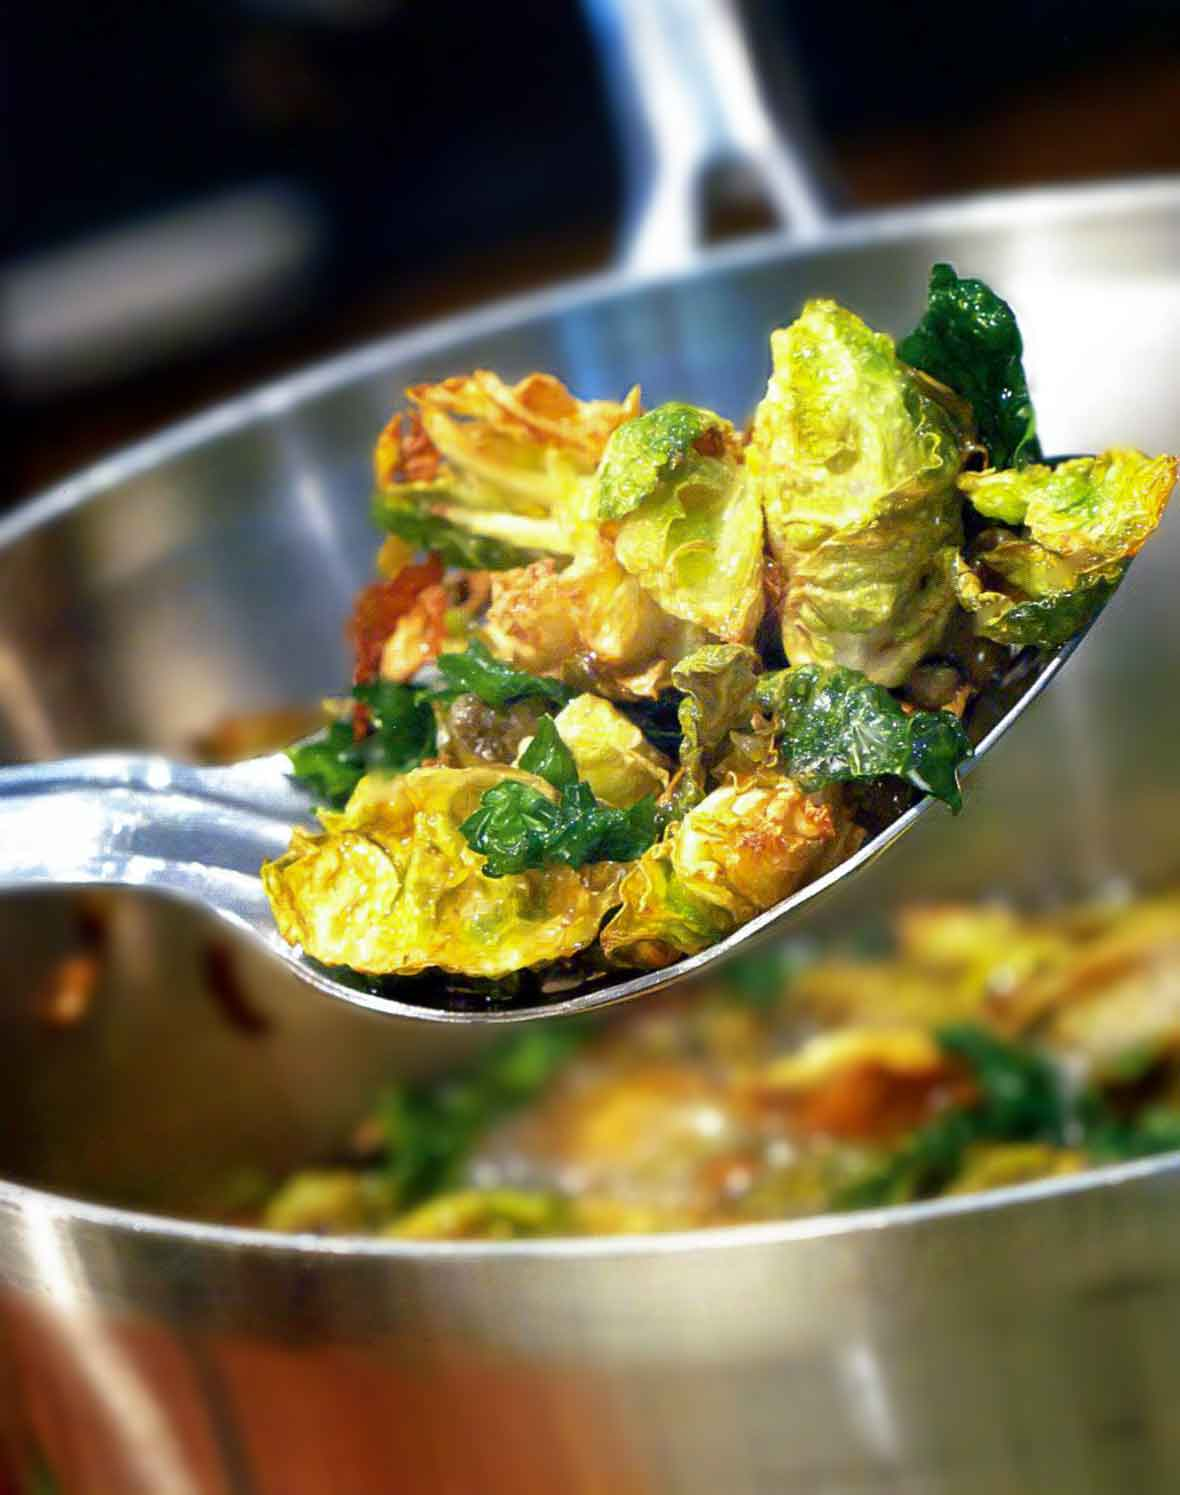 A serving spoon of fried Brussels sprouts with walnuts and capers resting over a large metal bowl.